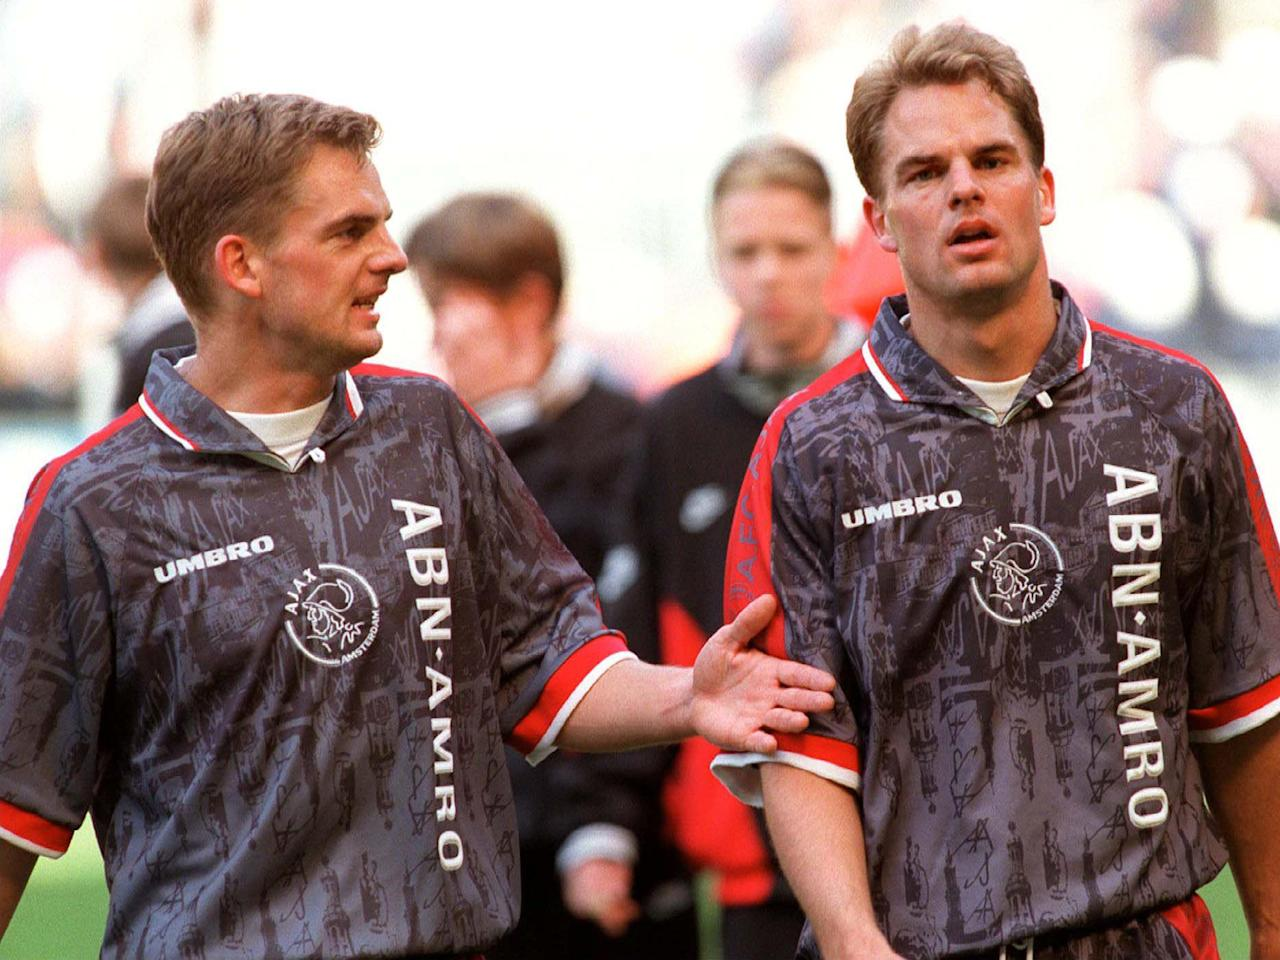 Crystal Palace confuse new manager Frank de Boer with his twin brother Ronald in embarrassing Twitter post